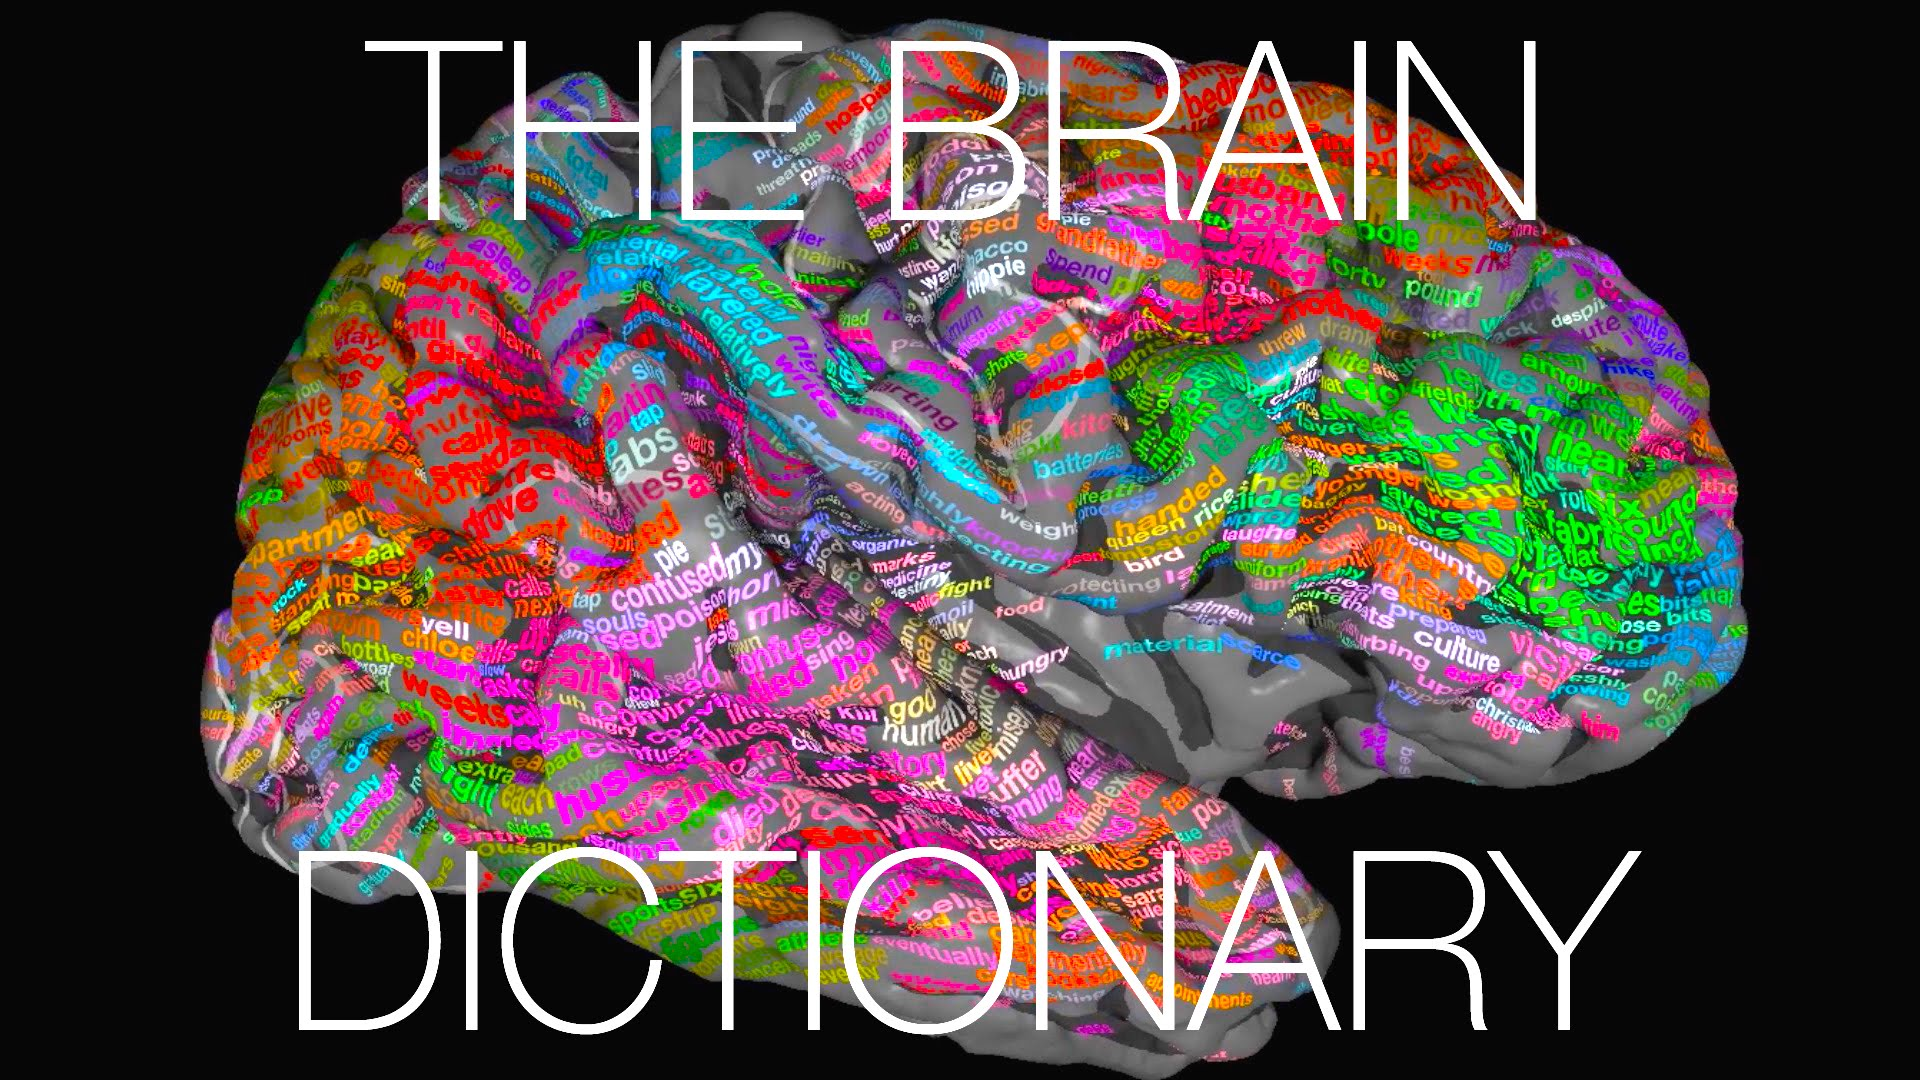 The brain dictionary beautiful 3d map shows how different brain areas respond to hearing different words open culture